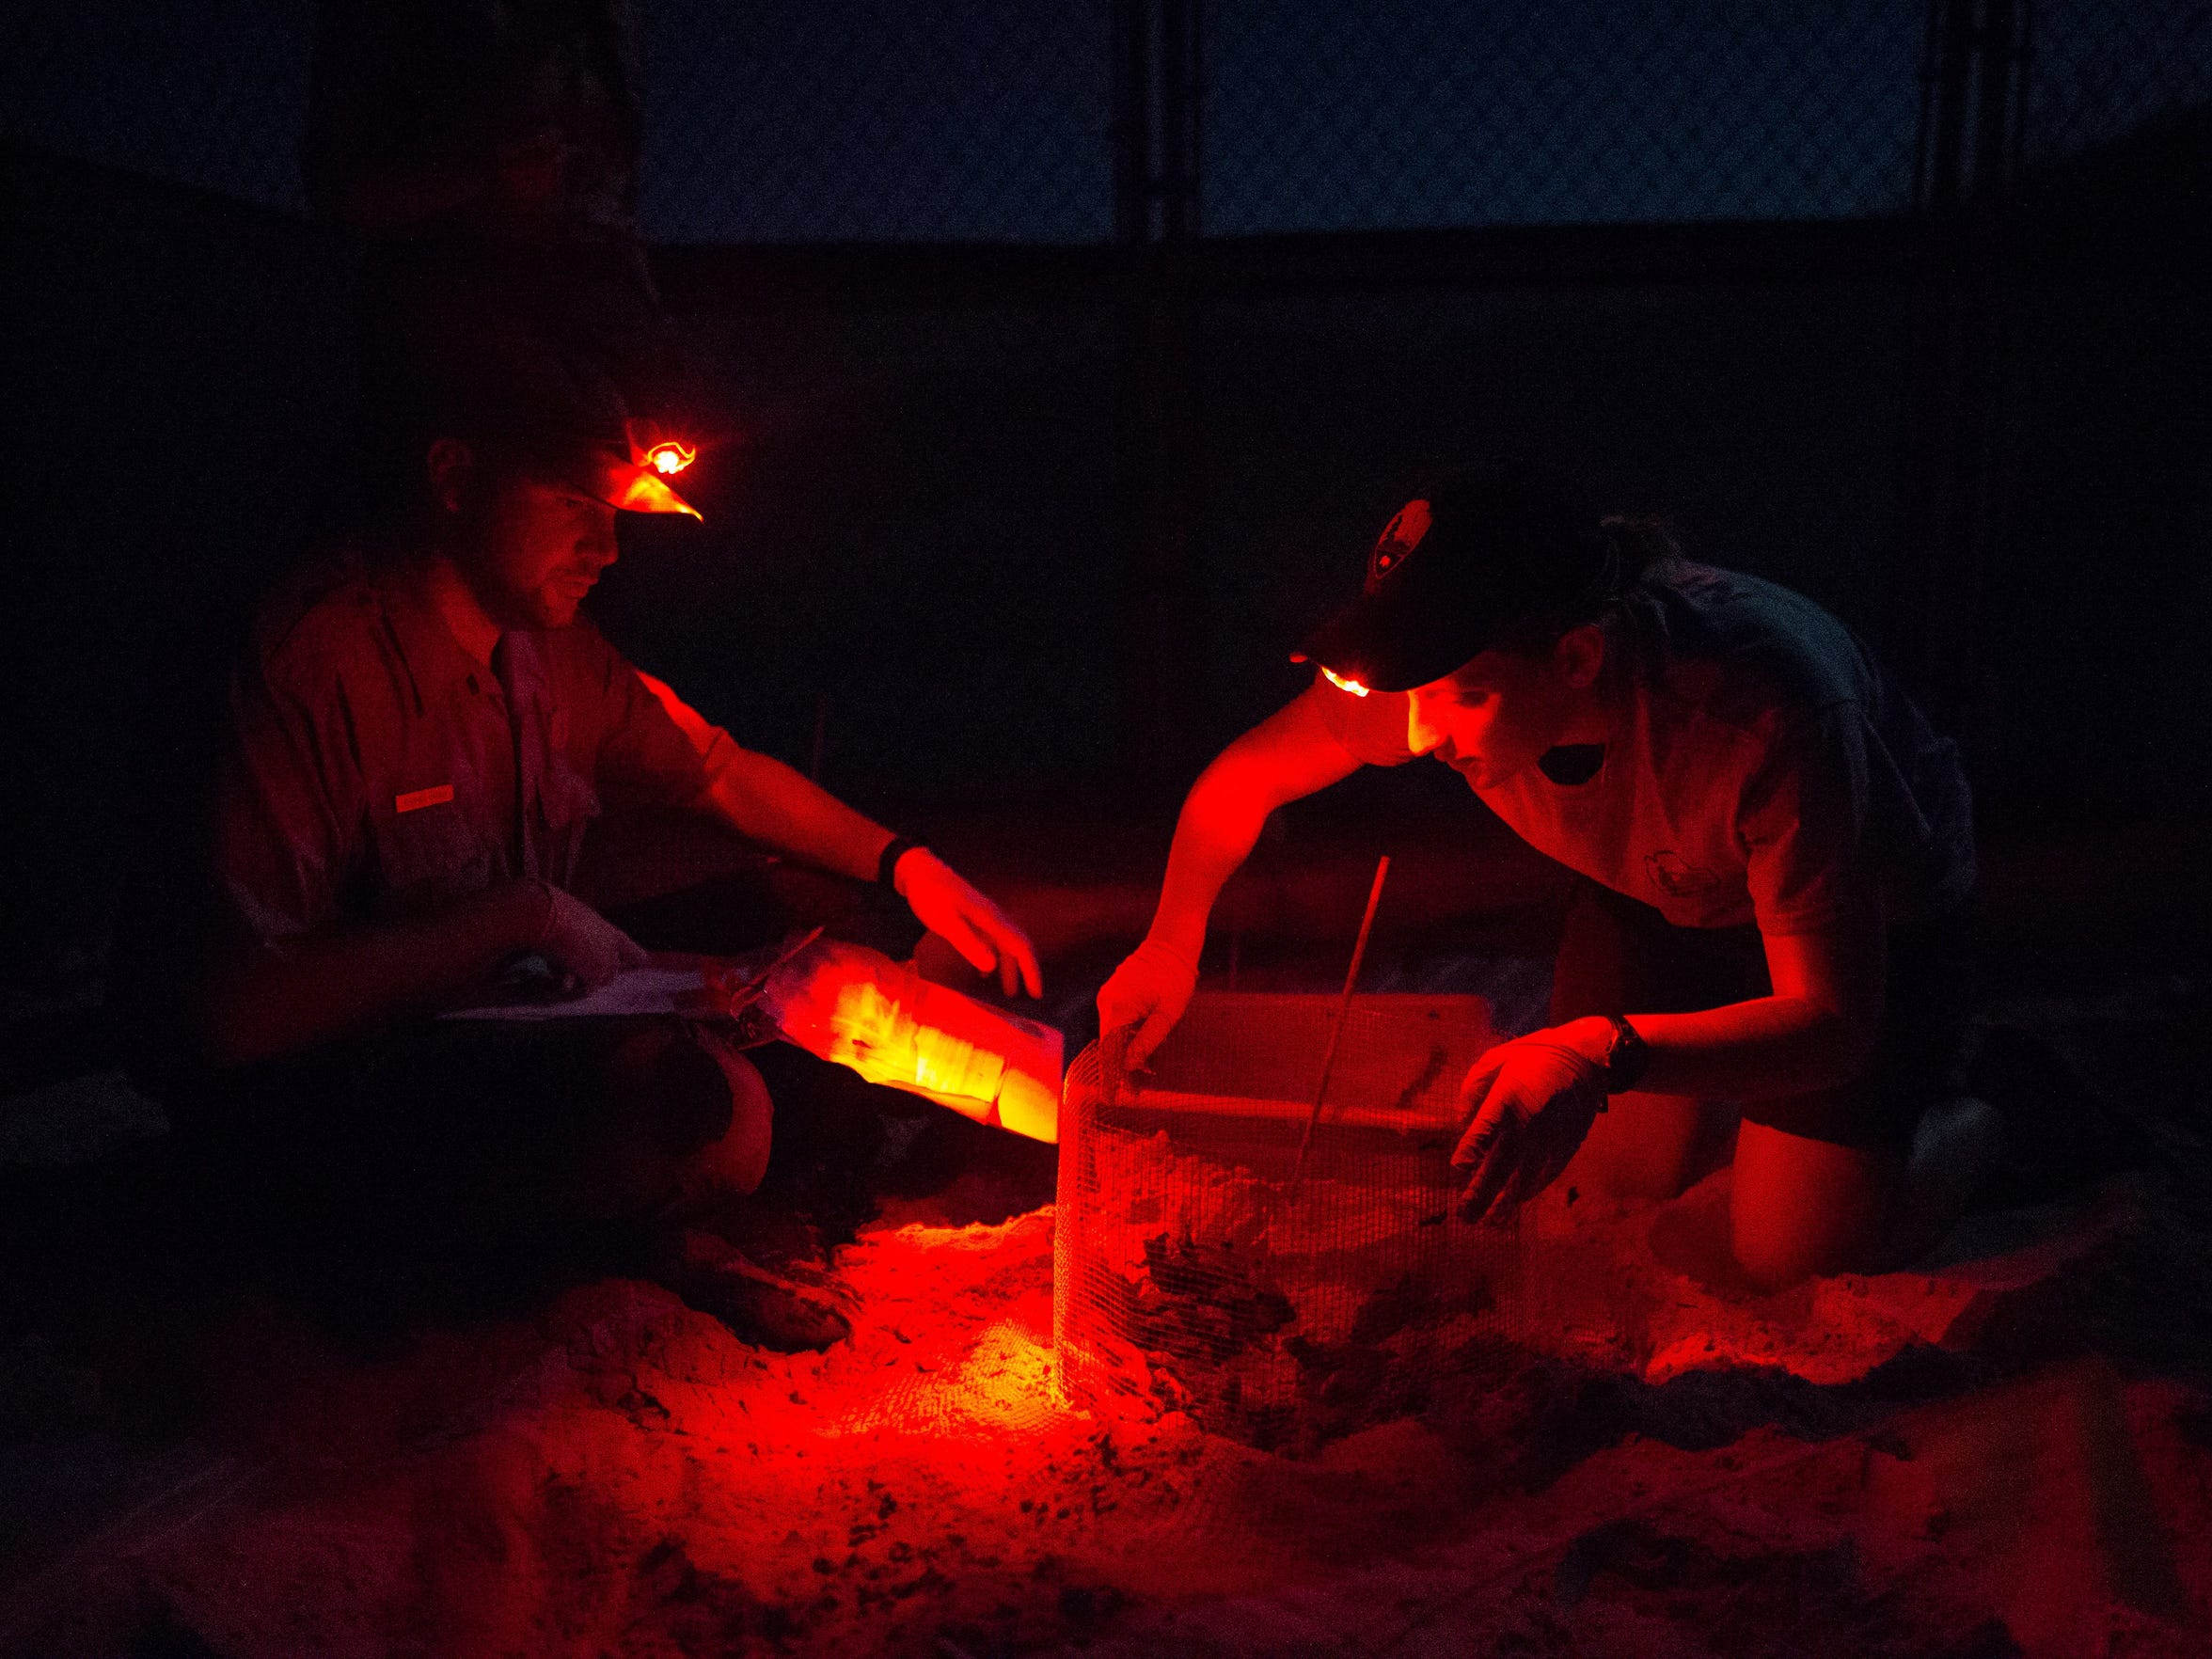 Biological Science Technicians Meg Streich and Tom Backof use red headlamps for light as they prepare to remove turtle hatchlings from their nest. Tom found that the Kemp's ridley sea turtle hatchlings has emerged from their nest during his 2 a.m. check, Monday, July 18, 2016.